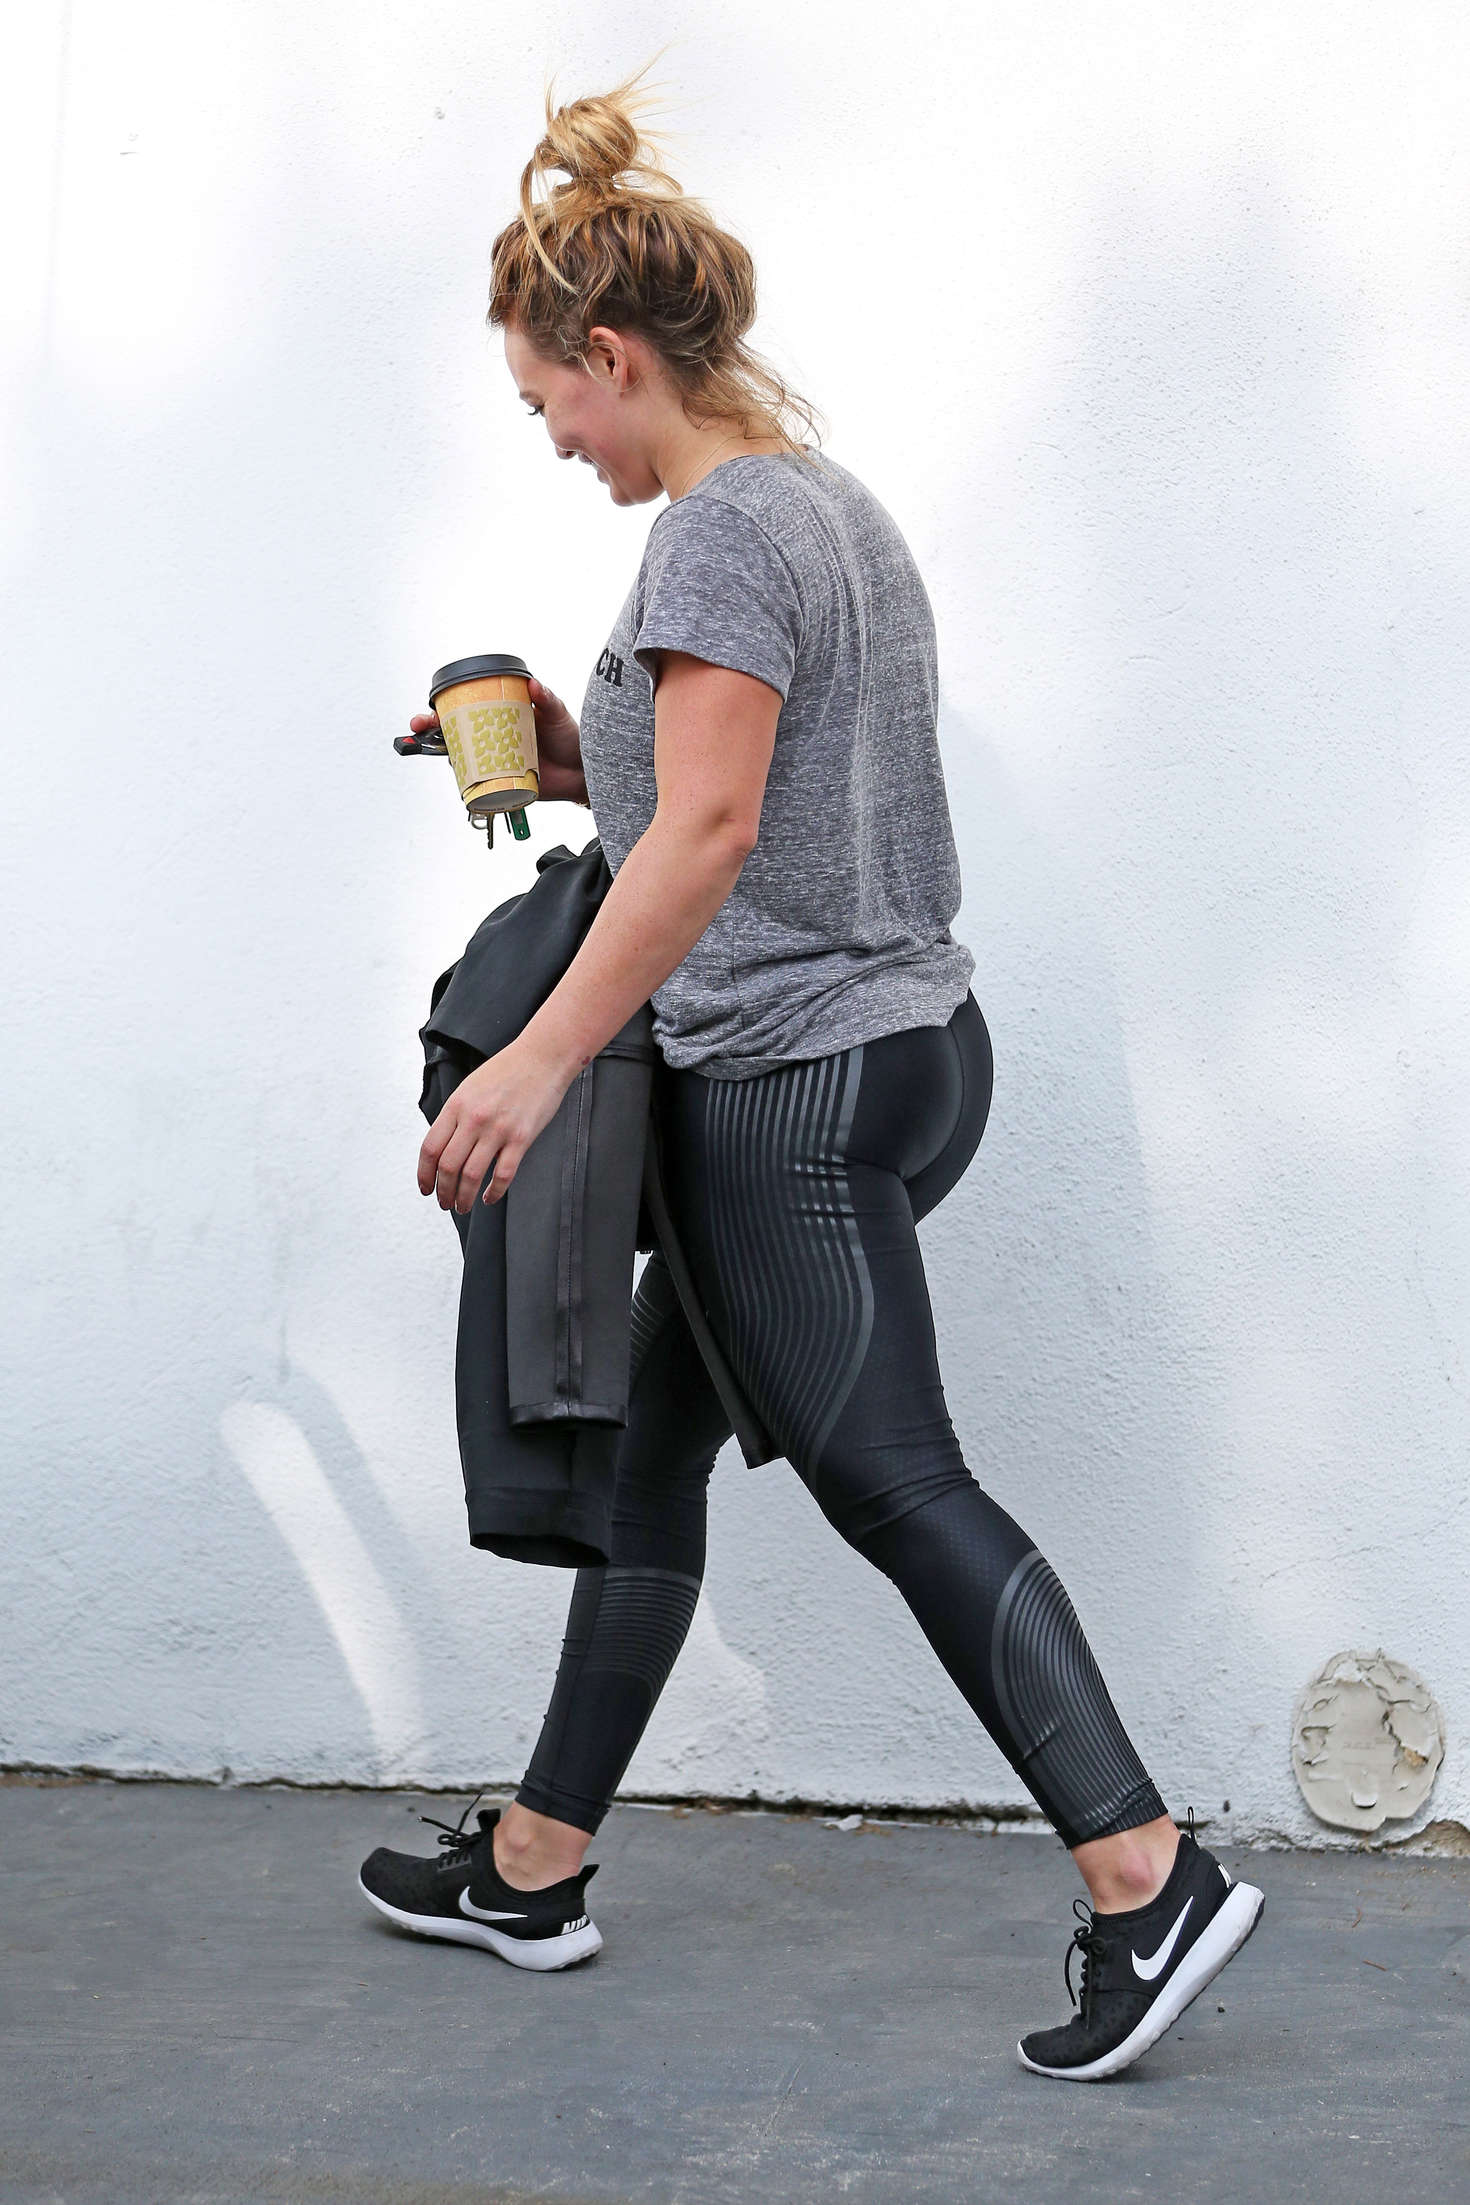 Hilary Duff - Leaving the Gym in West Hollywood